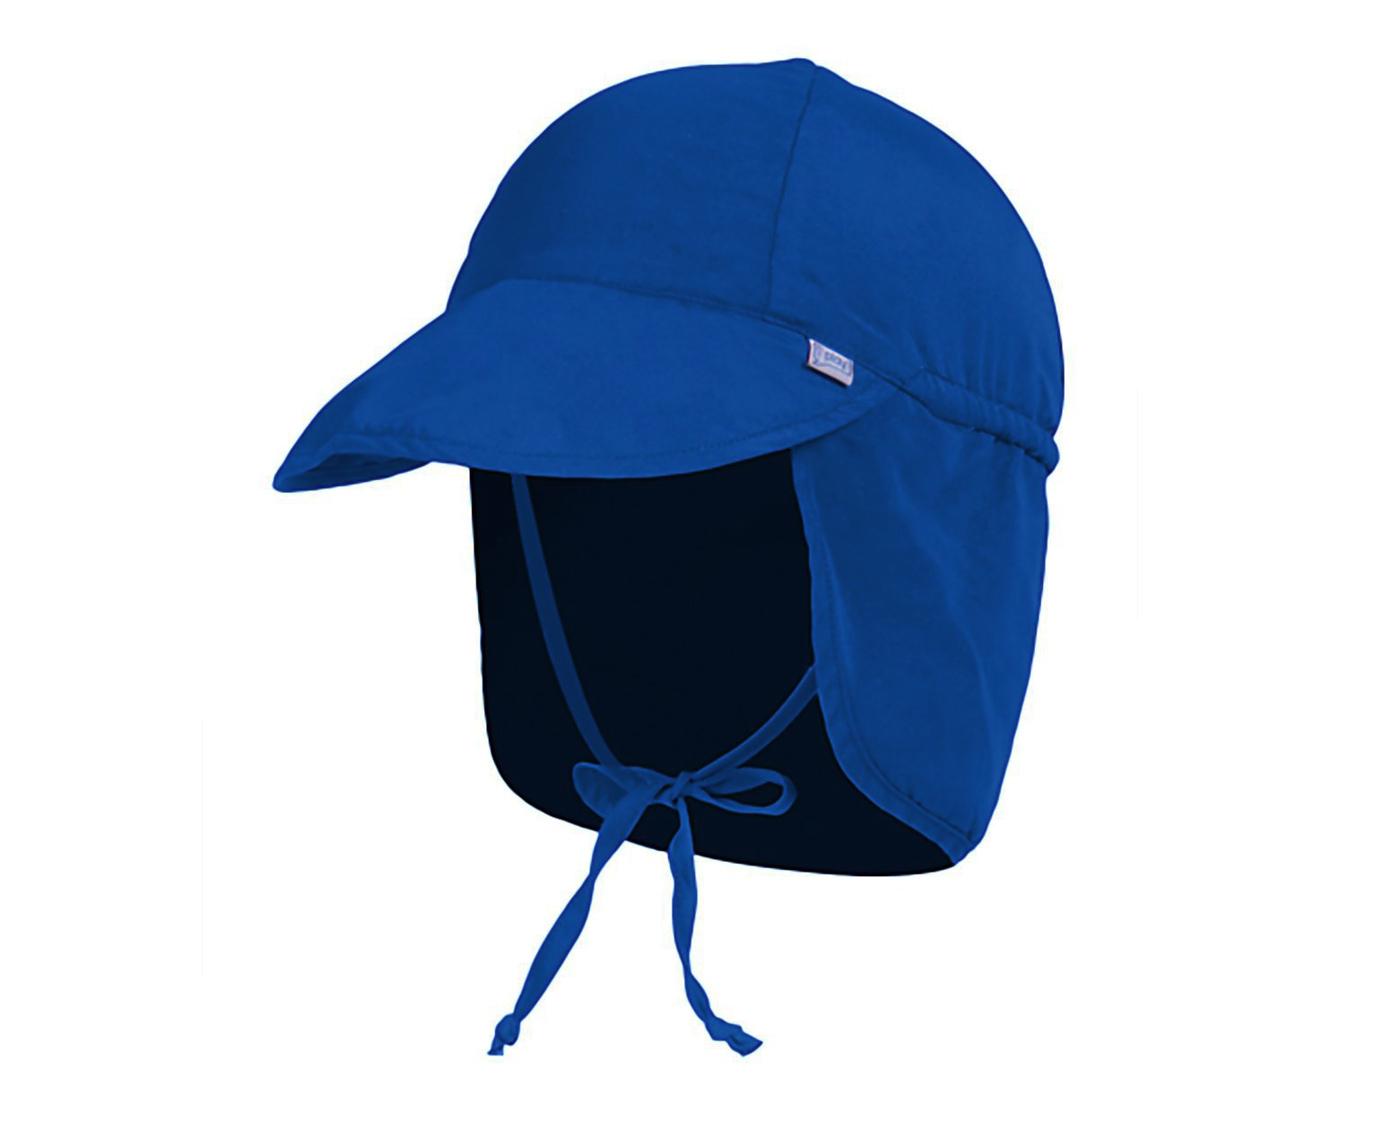 Zonnepetje 'Flap Royal blue' 2